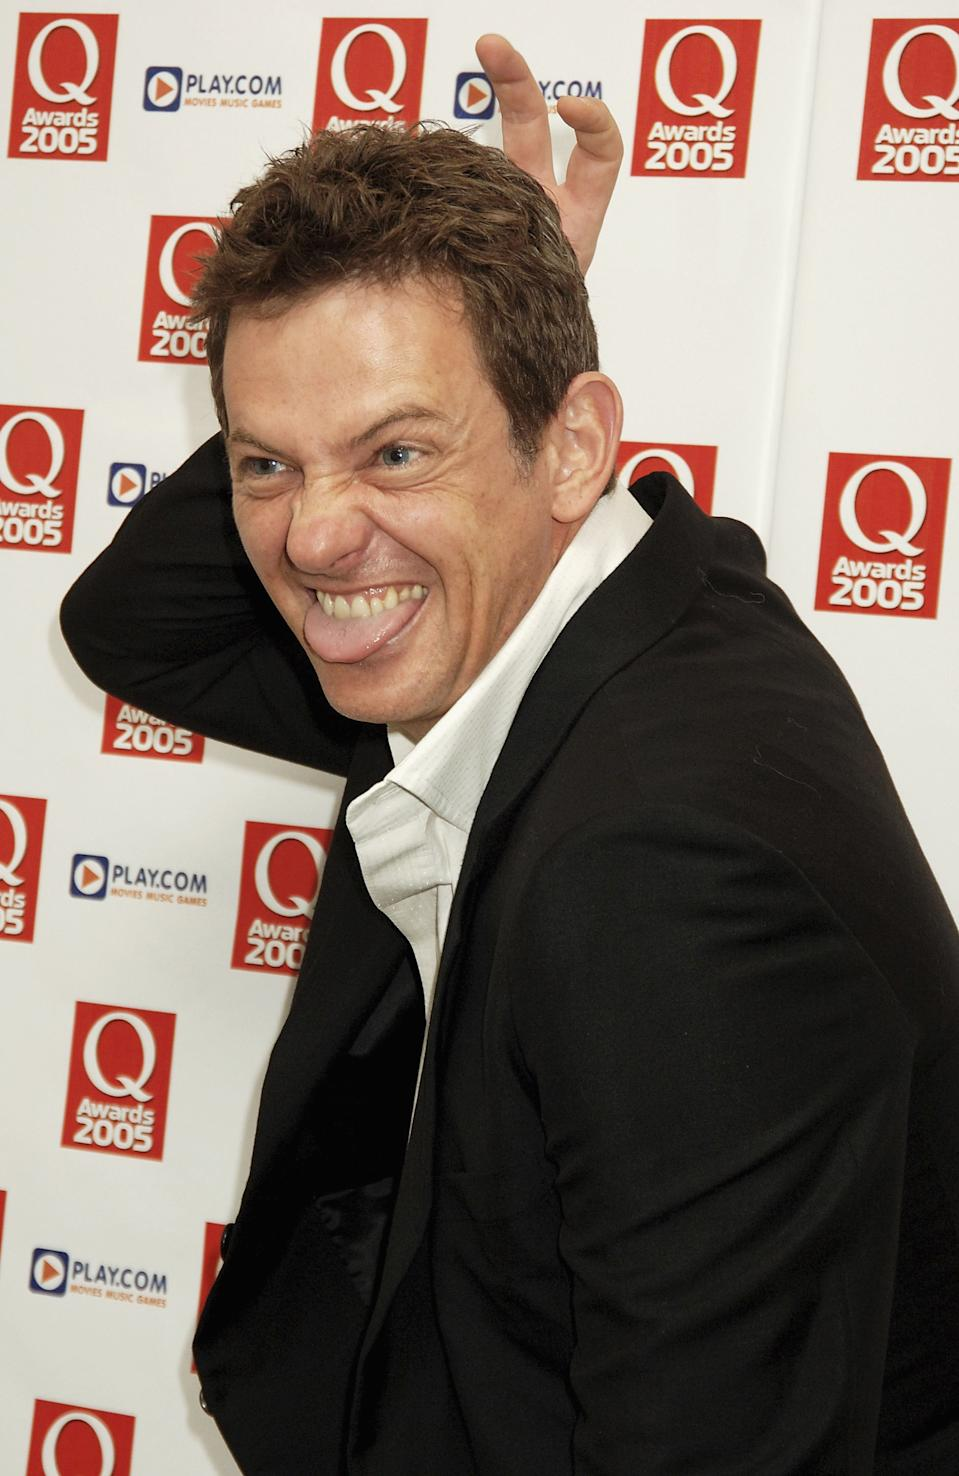 LONDON - OCTOBER 10: (EMBARGOED FOR PUBLICATION IN UK TABLOID NEWSPAPERS UNTIL 48 HOURS AFTER CREATE DATE AND TIME) Matthew Wright arrives at The Q Awards, the annual magazine?s music awards, at Grosvenor House on October 10, 2005 in London, England. (Photo by Dave M. Benett/Getty Images)